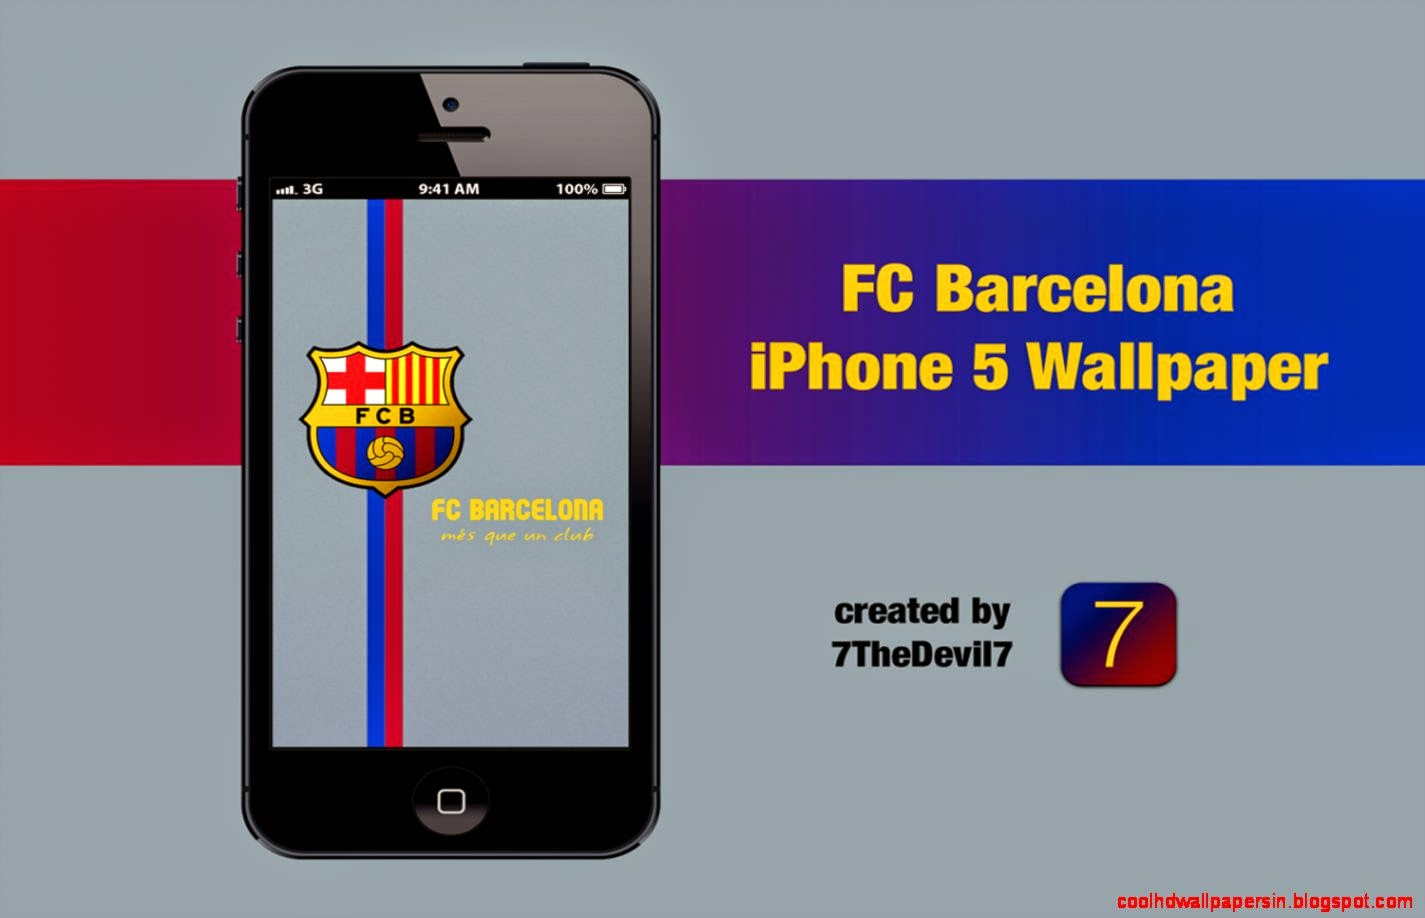 Top   Wallpaper Horse Iphone 5c - deviantart-more-like-fc-barcelona-iphone-5-wallpaper-by-7thedevil7  Graphic_765927.jpg